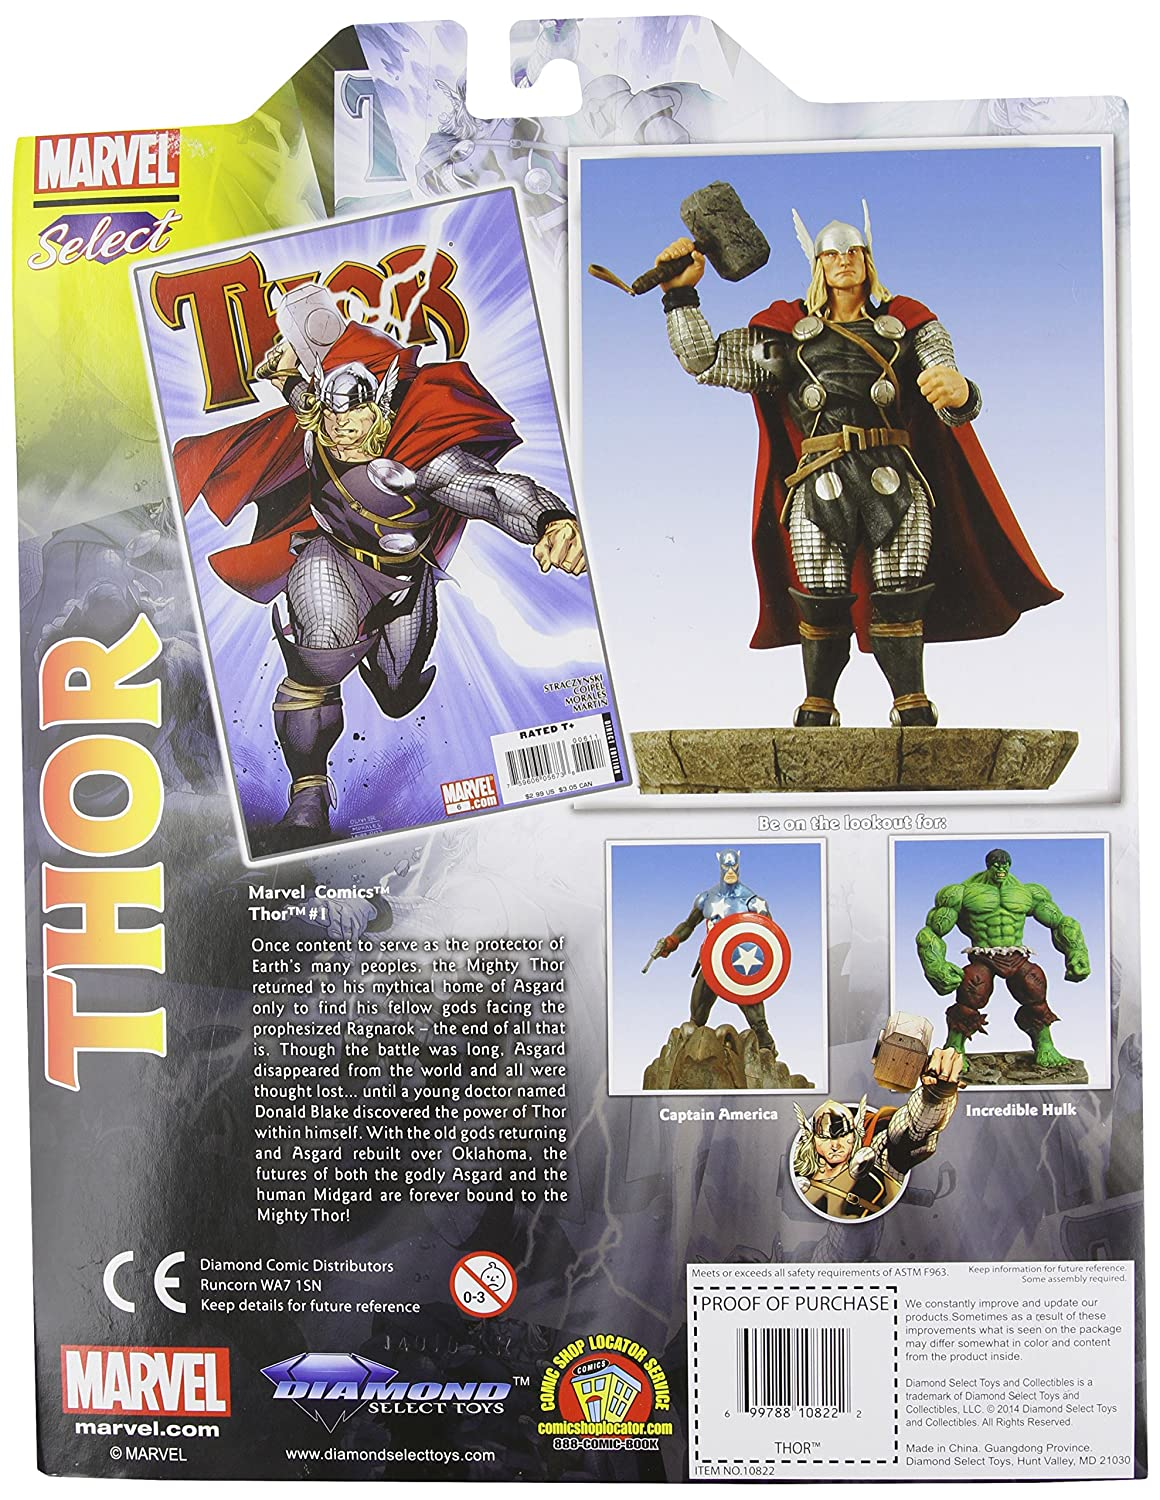 Diamond Select Toys Marvel Select Thor Action Figure Rejects from Studios OCT073173